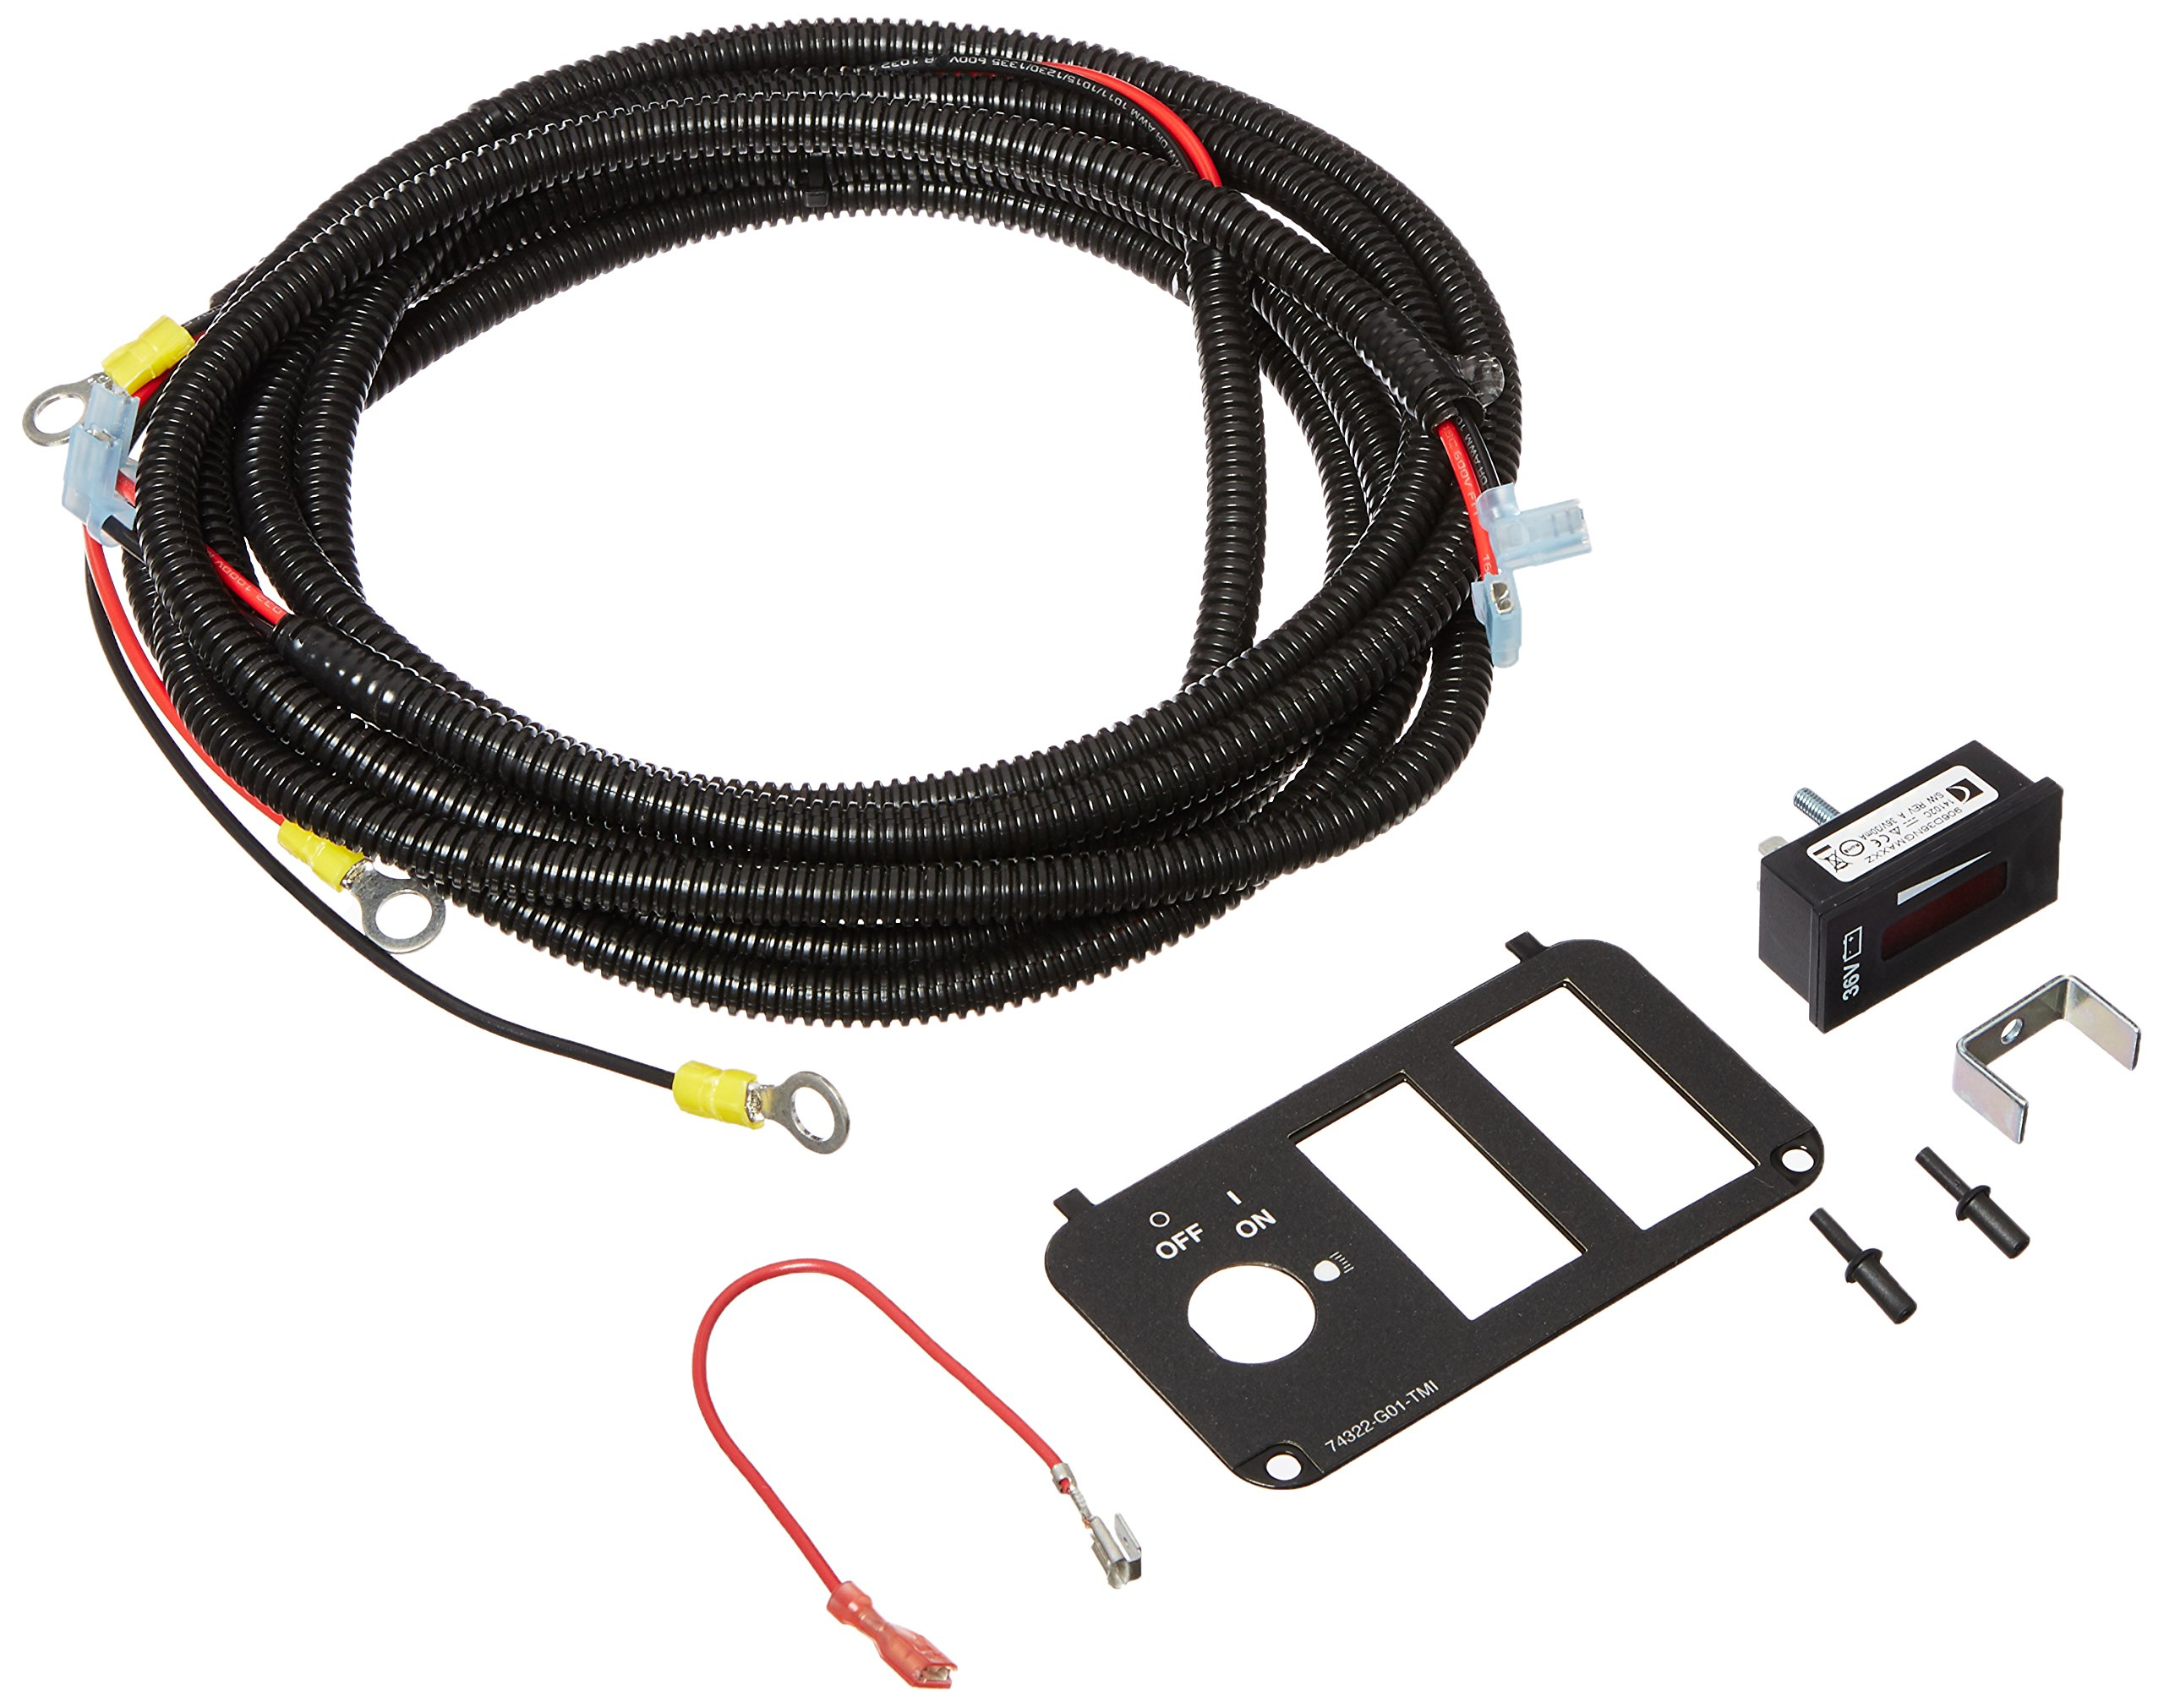 EZGO 750287PKG State of Charge Package, 36-Volt